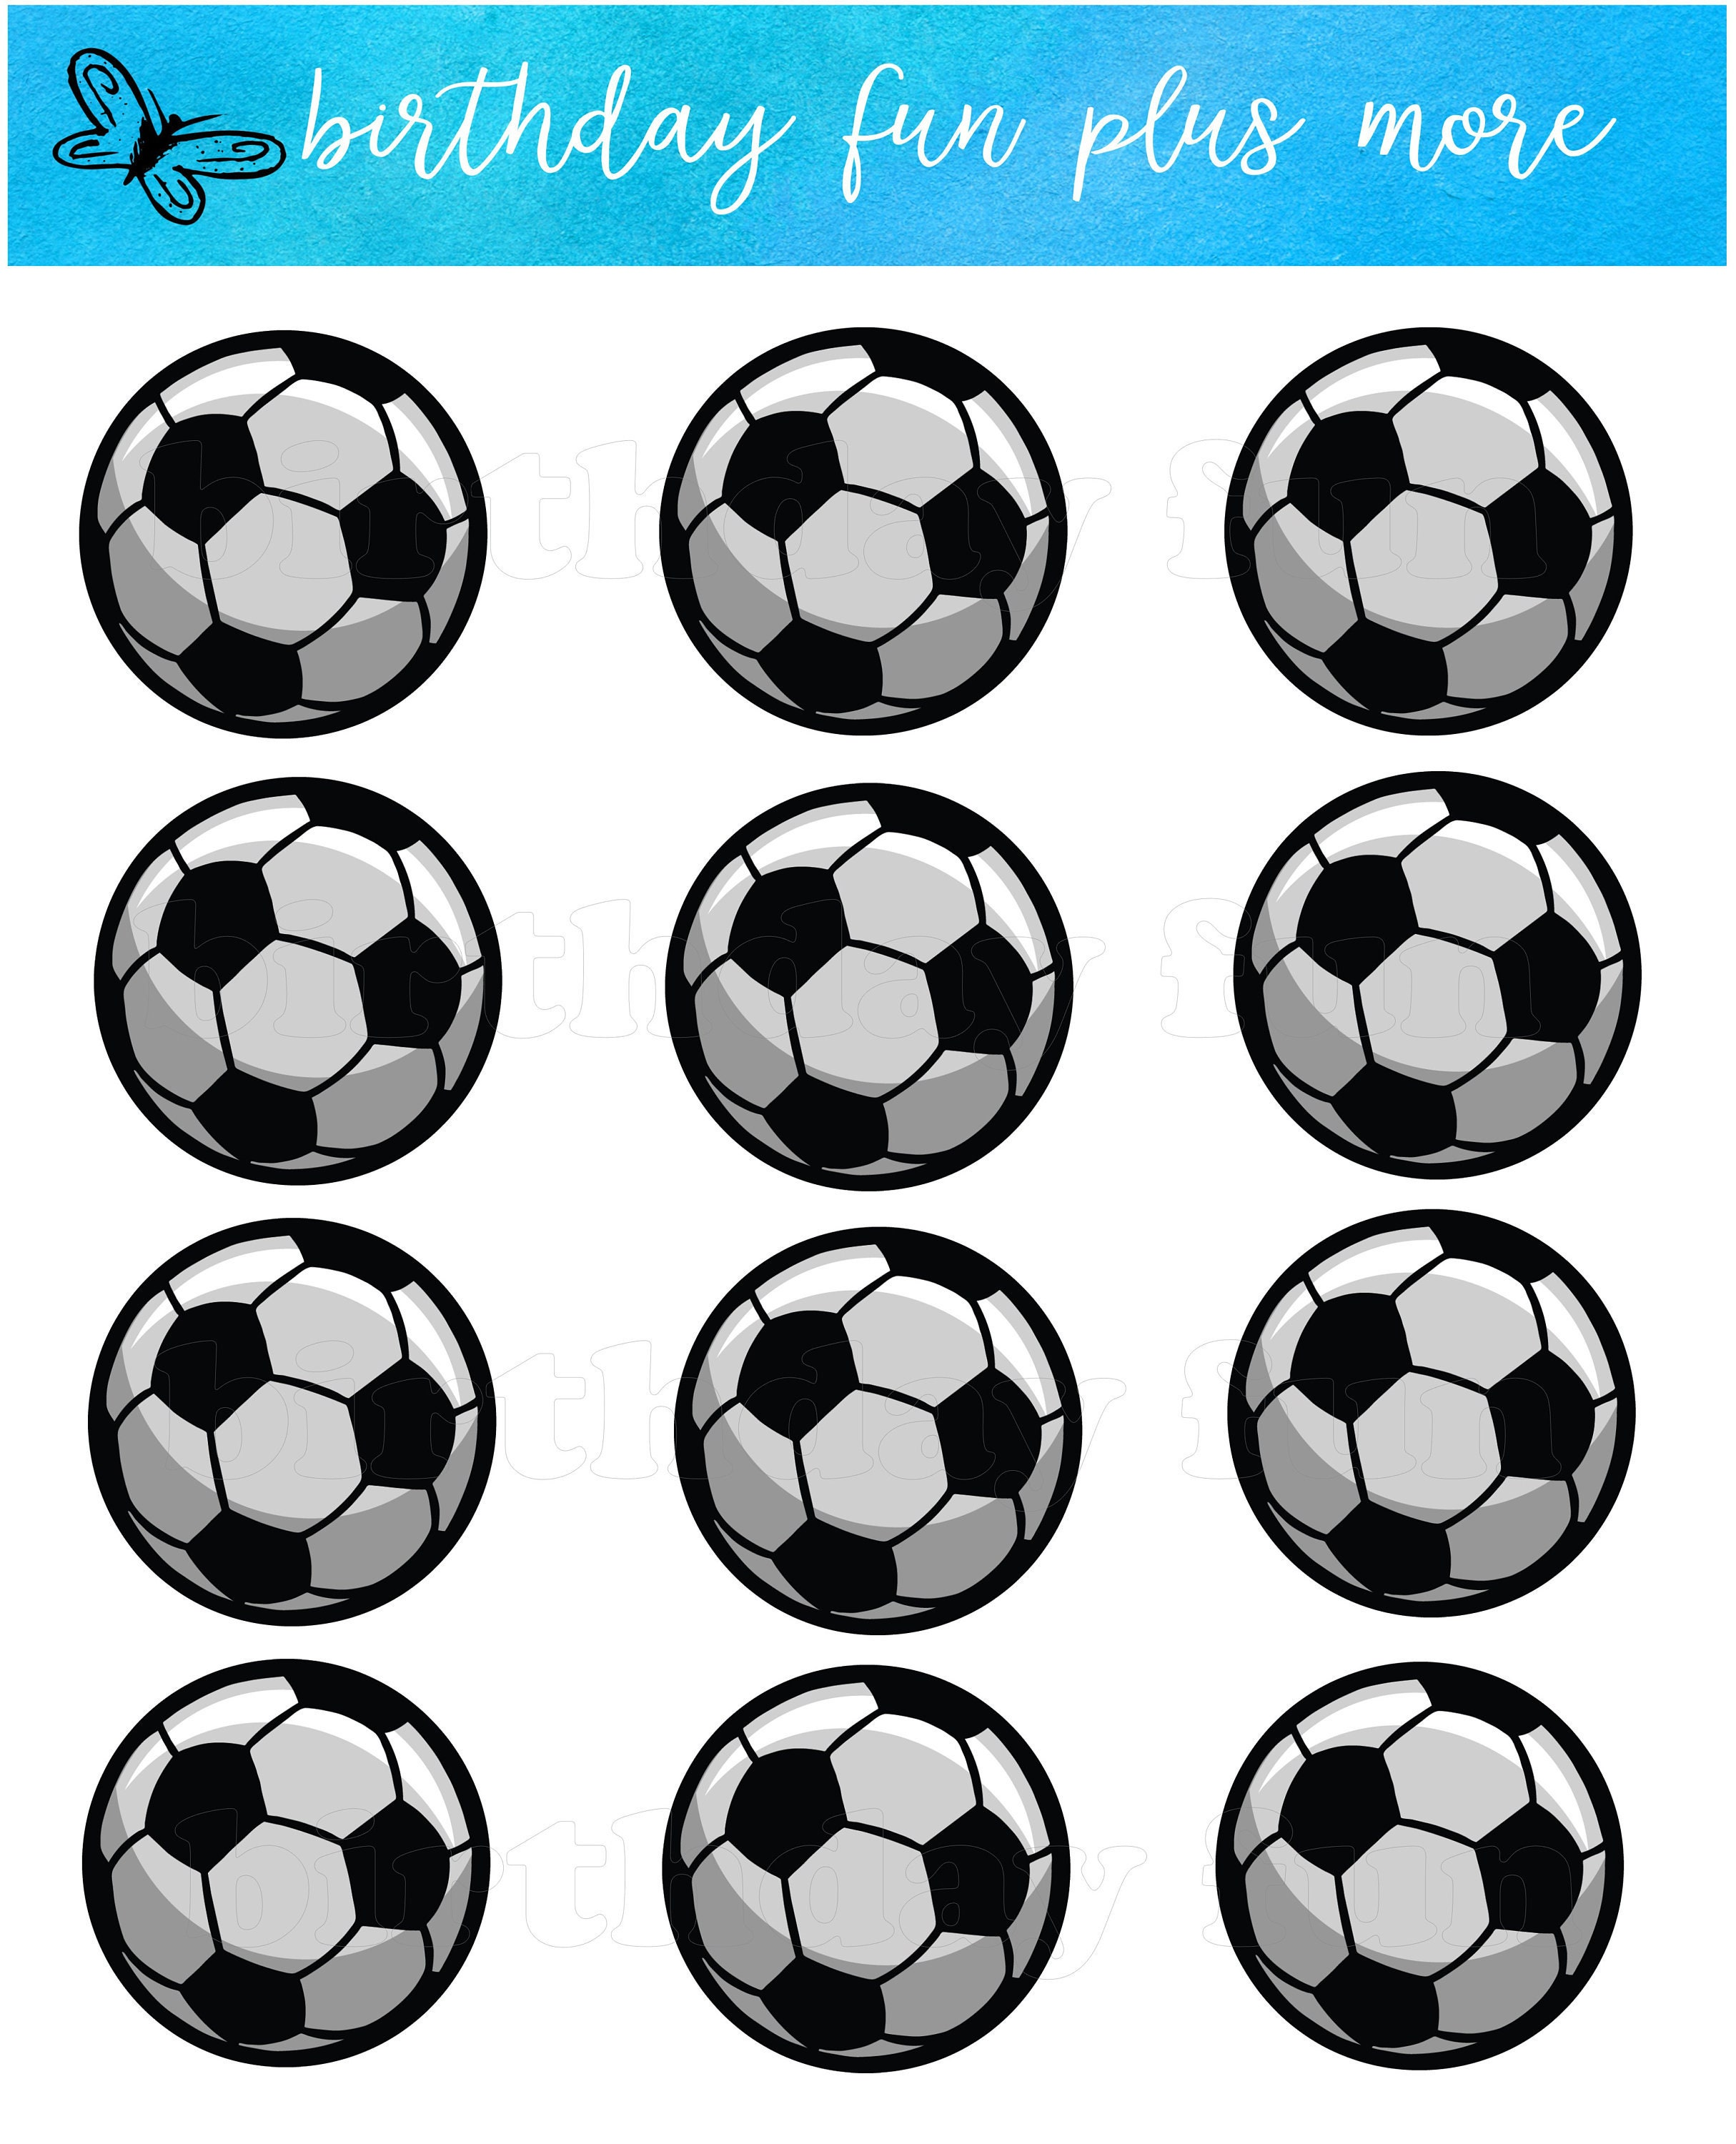 graphic regarding Soccer Printable identified as Football PRINTABLE Cupcake toppers, electronic football cupcake toppers, instantaneous obtain printable football, football get together, football topic, football